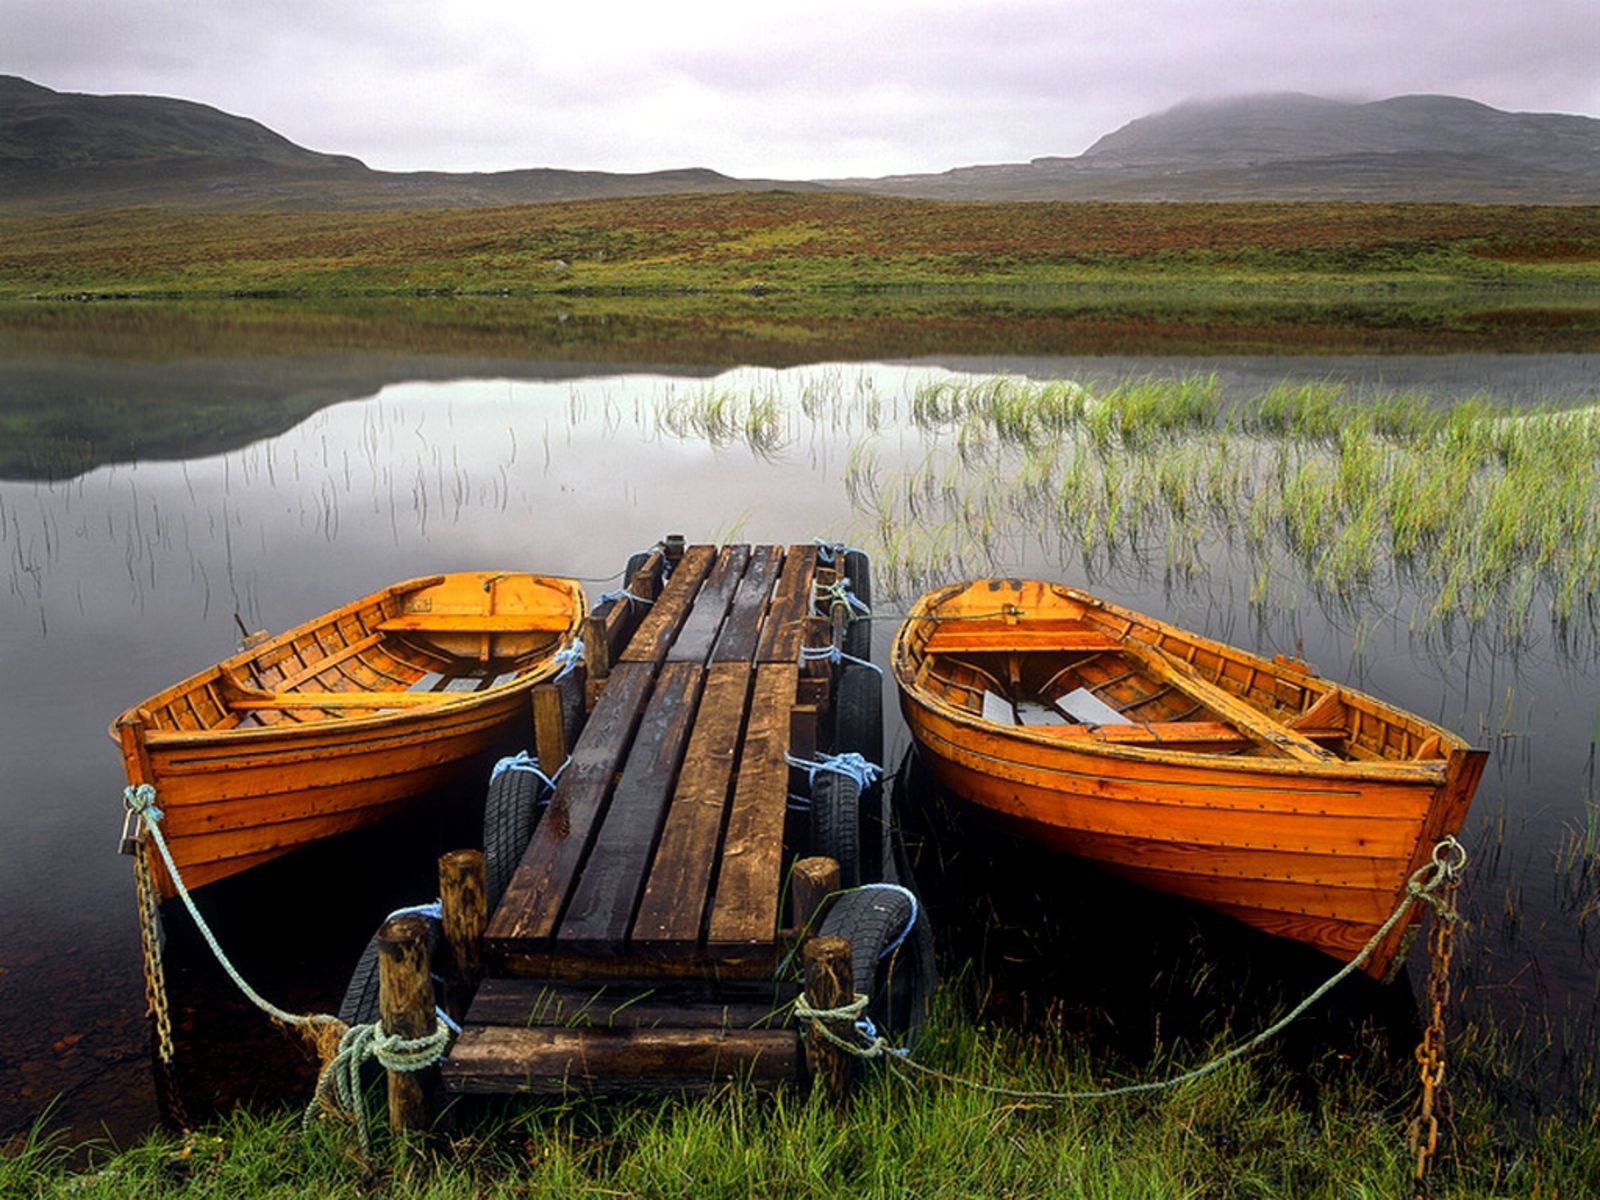 Boat Wallpaper Backgrounds Wood Old Boats Wallpaper Old Boats Boat Wallpaper Boat